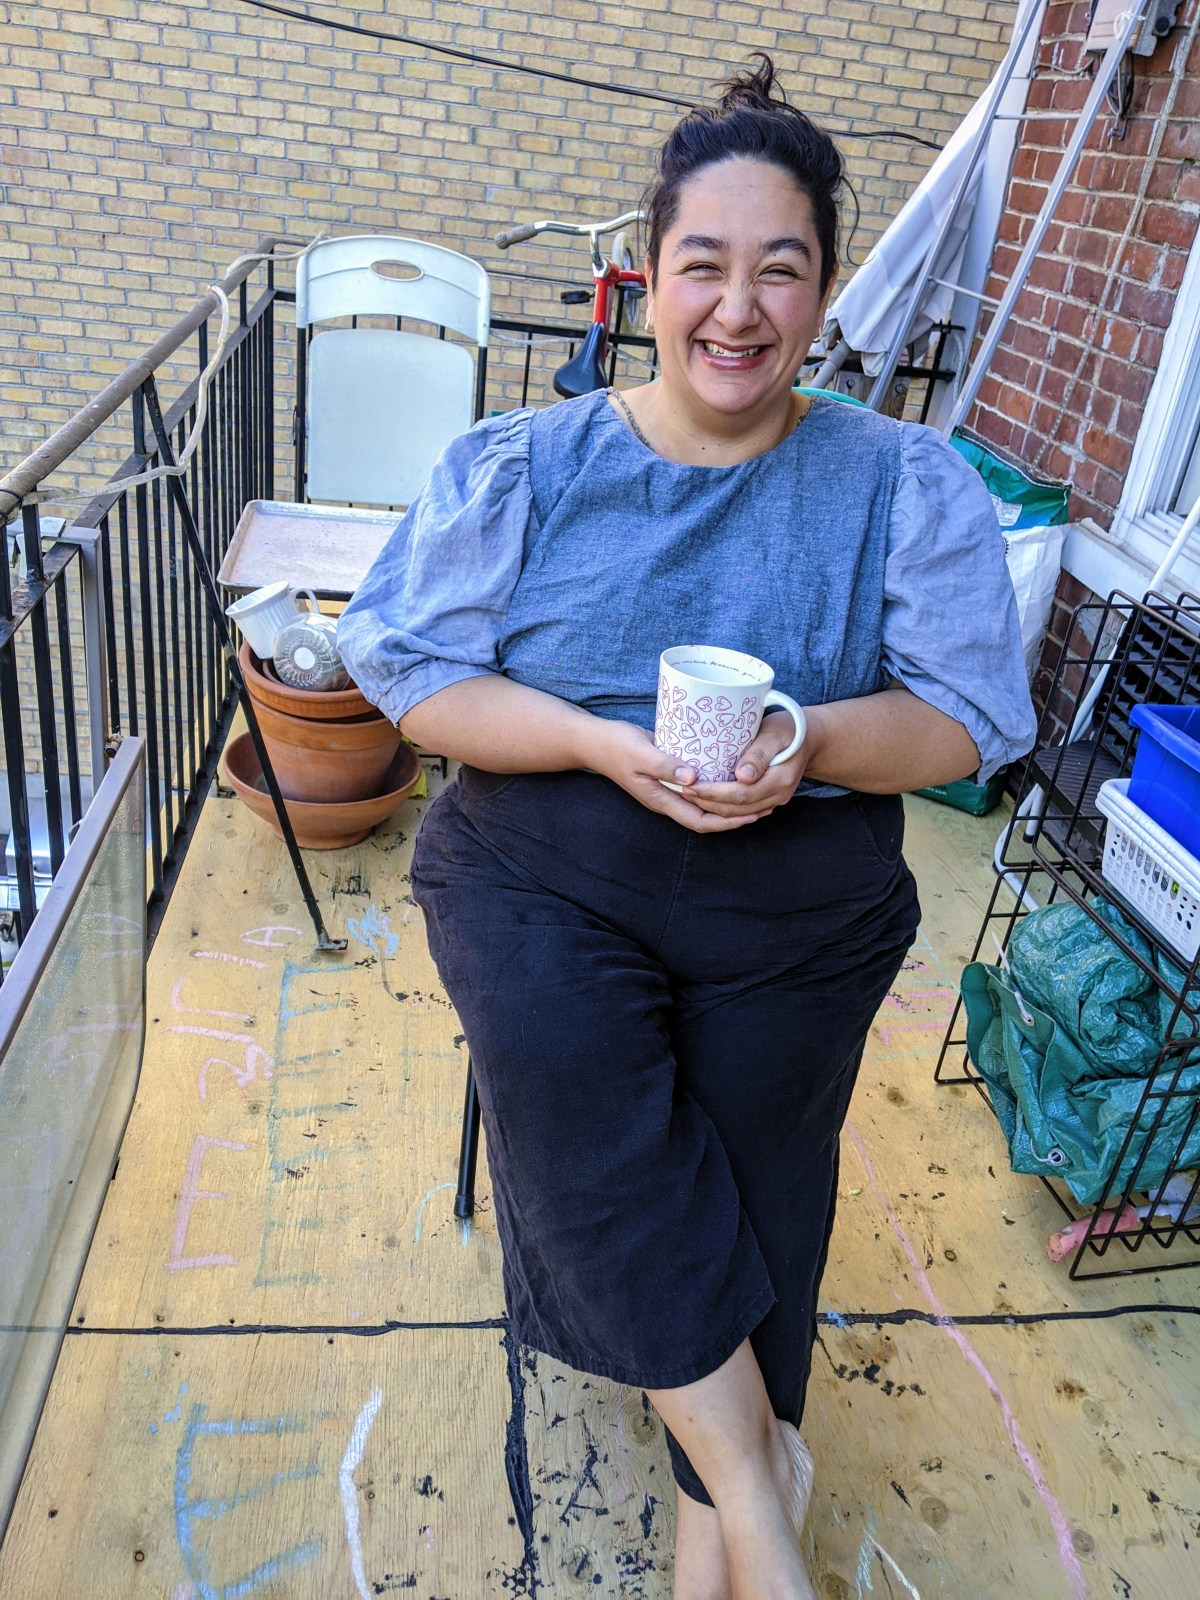 The author in a blue blouse and dark pants, smiling at the camera and holding a mug outdoors